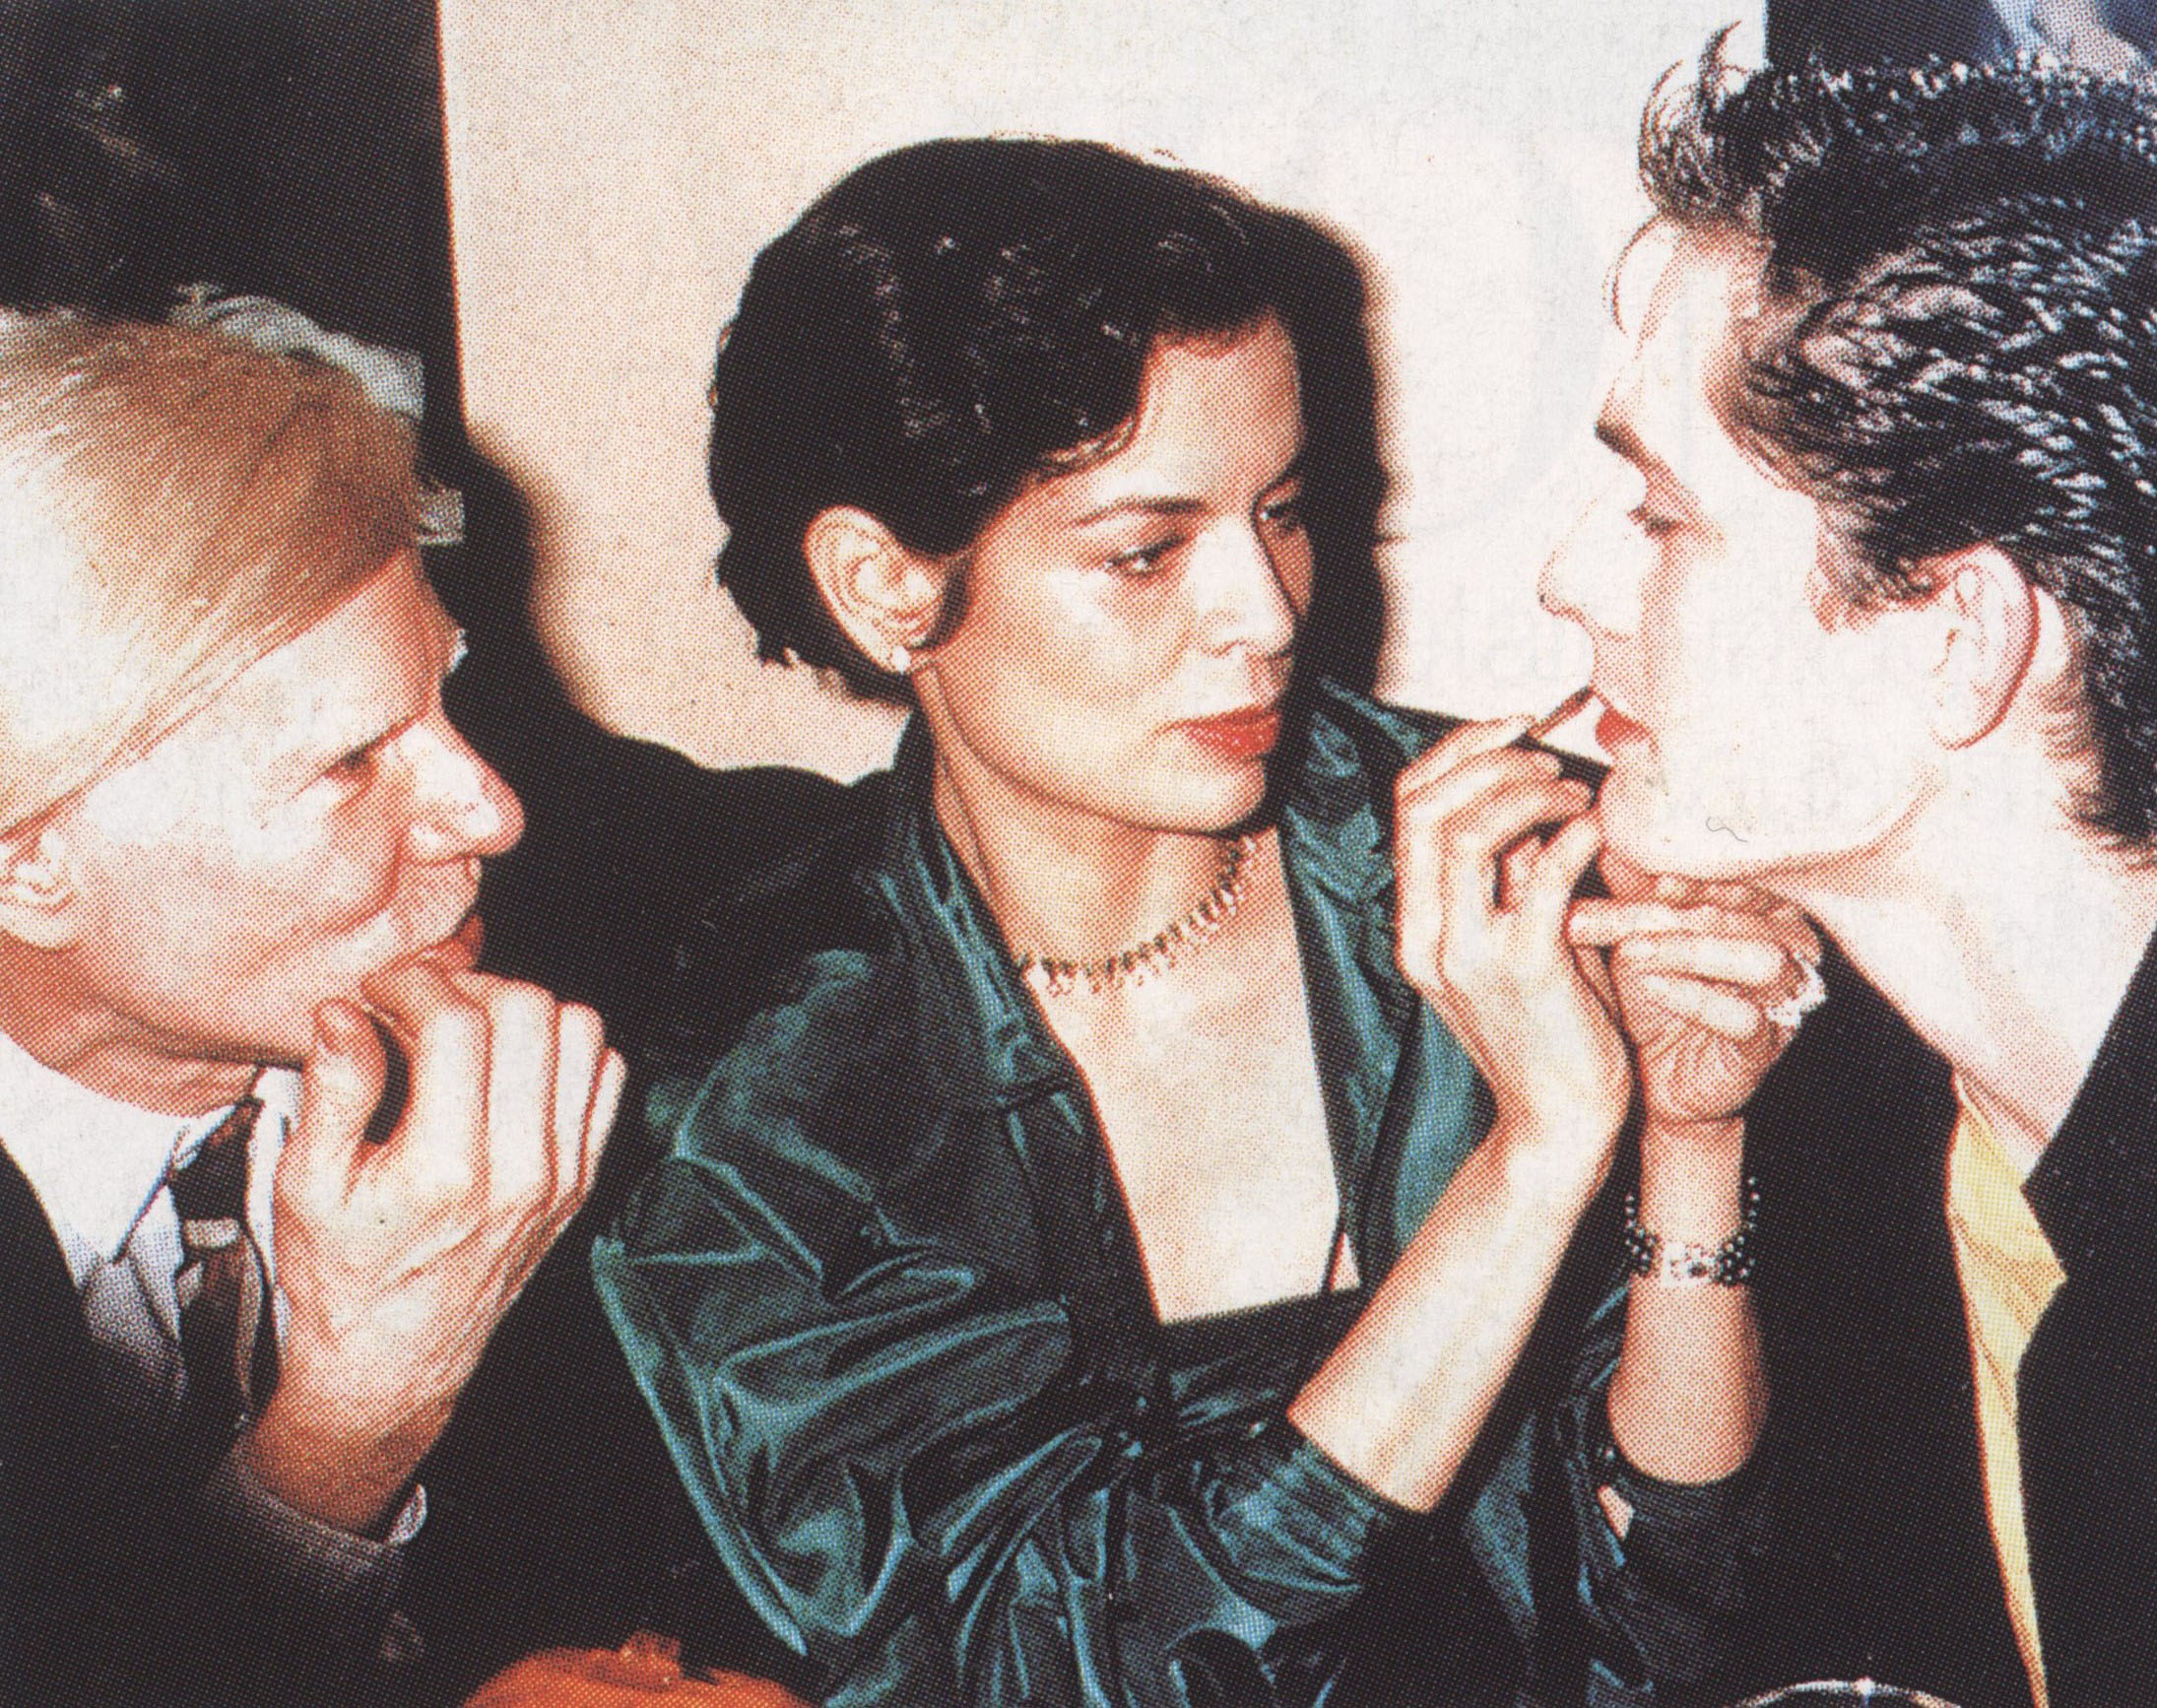 ANDY WARHOL, BIANCA JAGGER AND RUPERT EVERETT VOGUE PARIS N° 807 MAY 2000